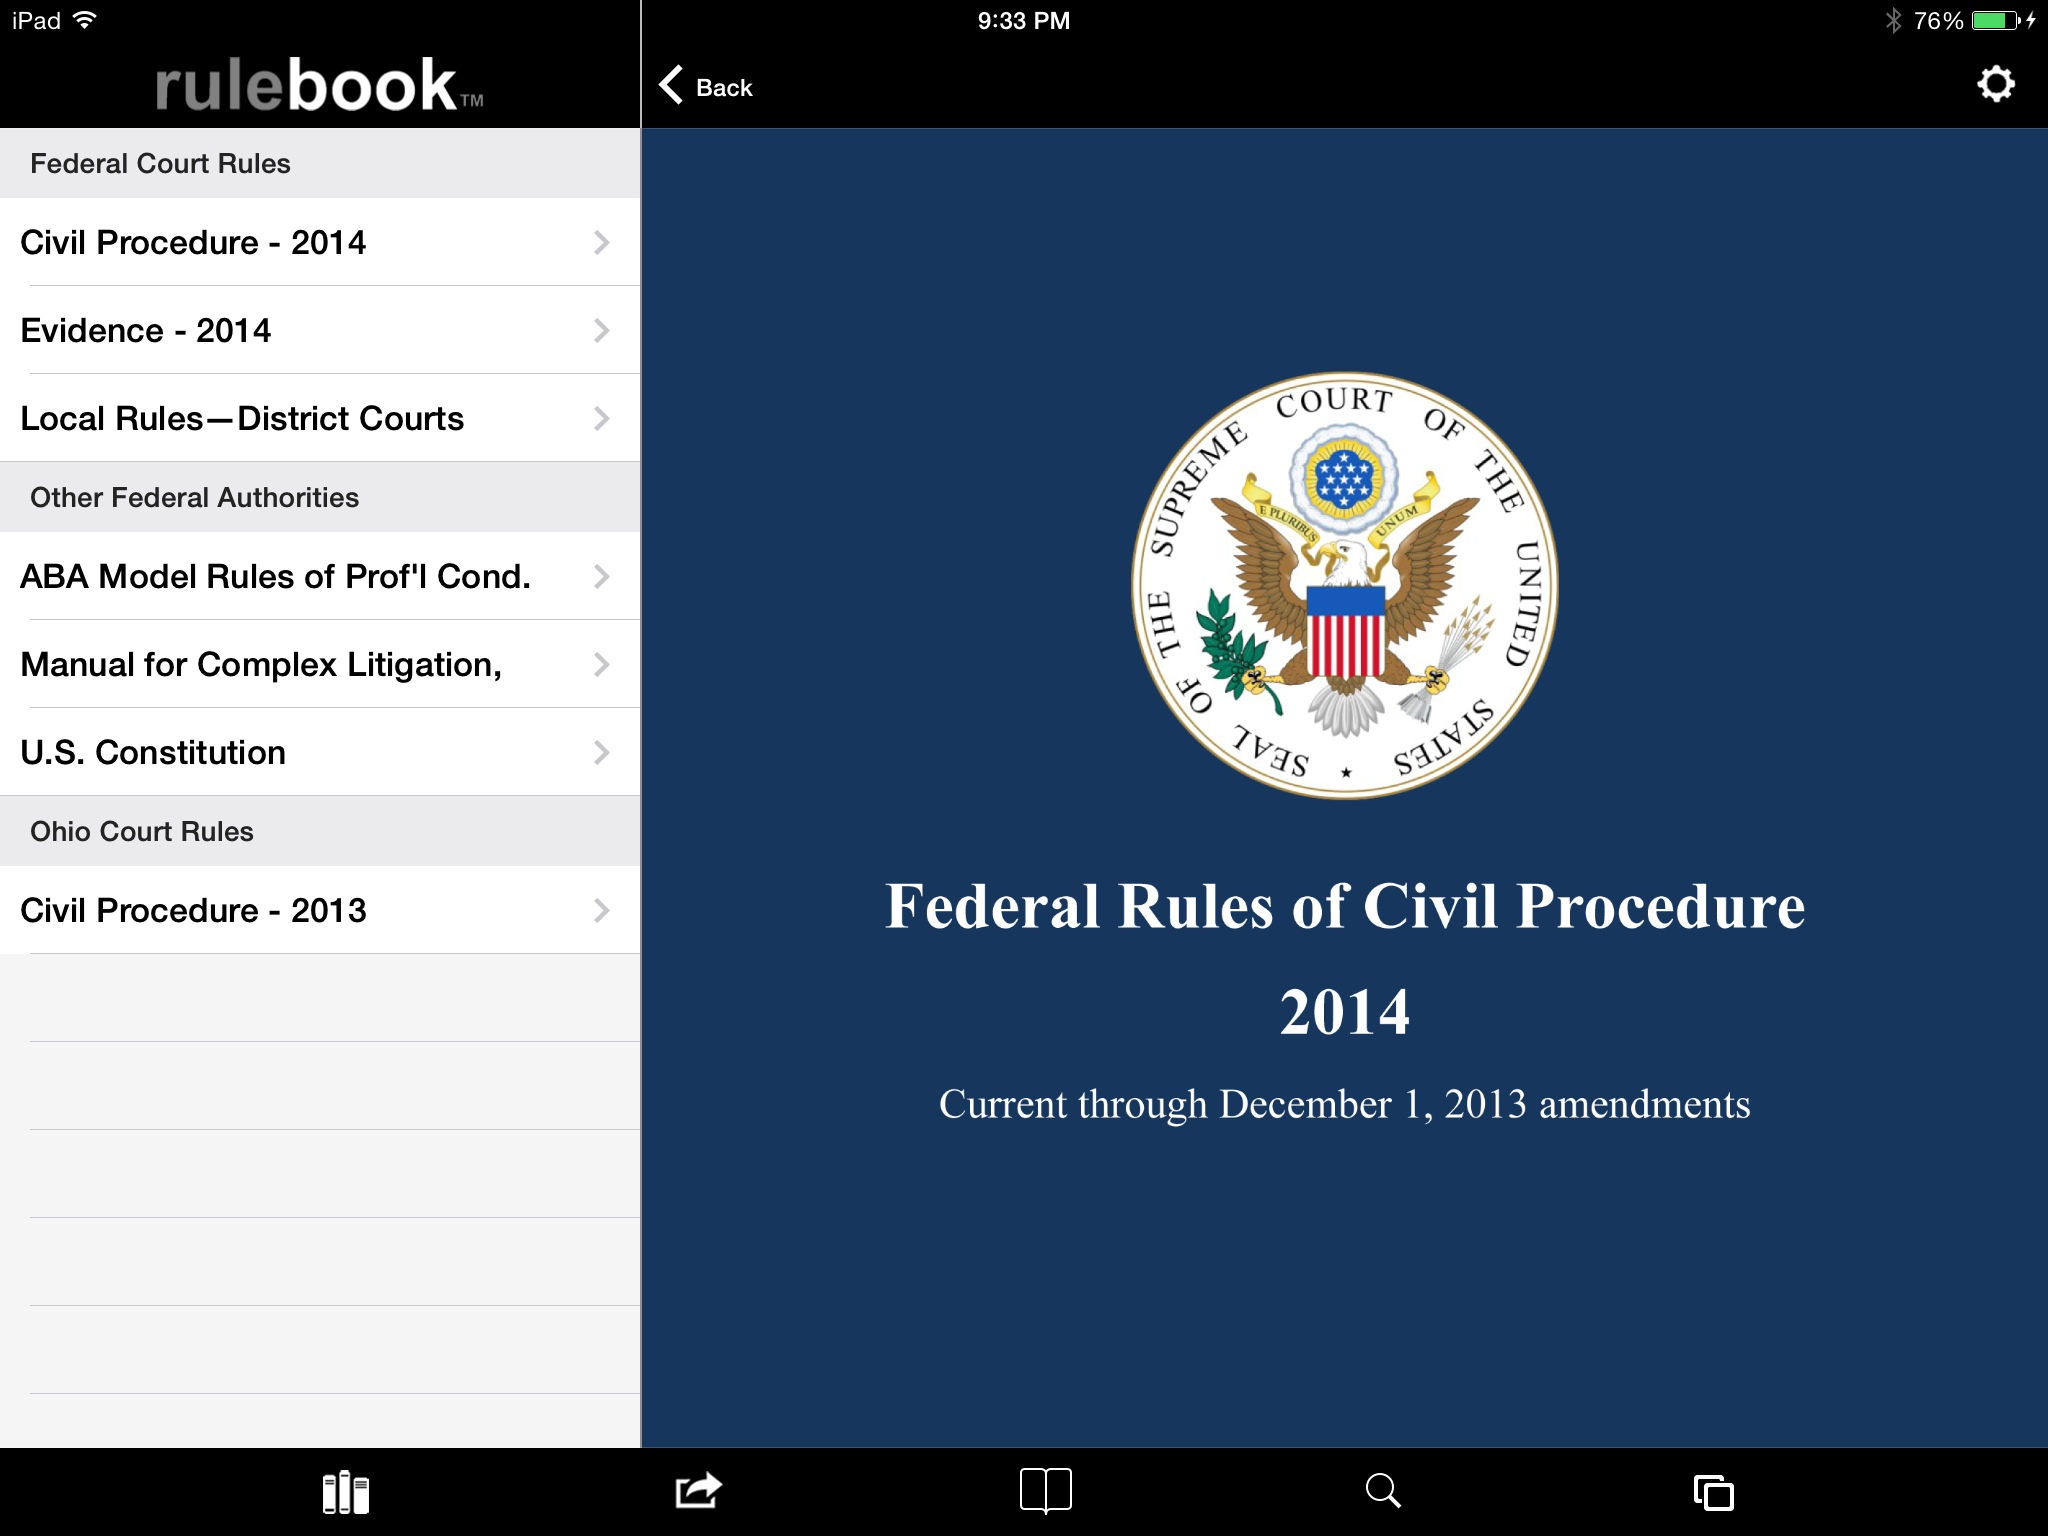 """iPad App Review: """"Rulebook App Can Replace Your Rule Books"""